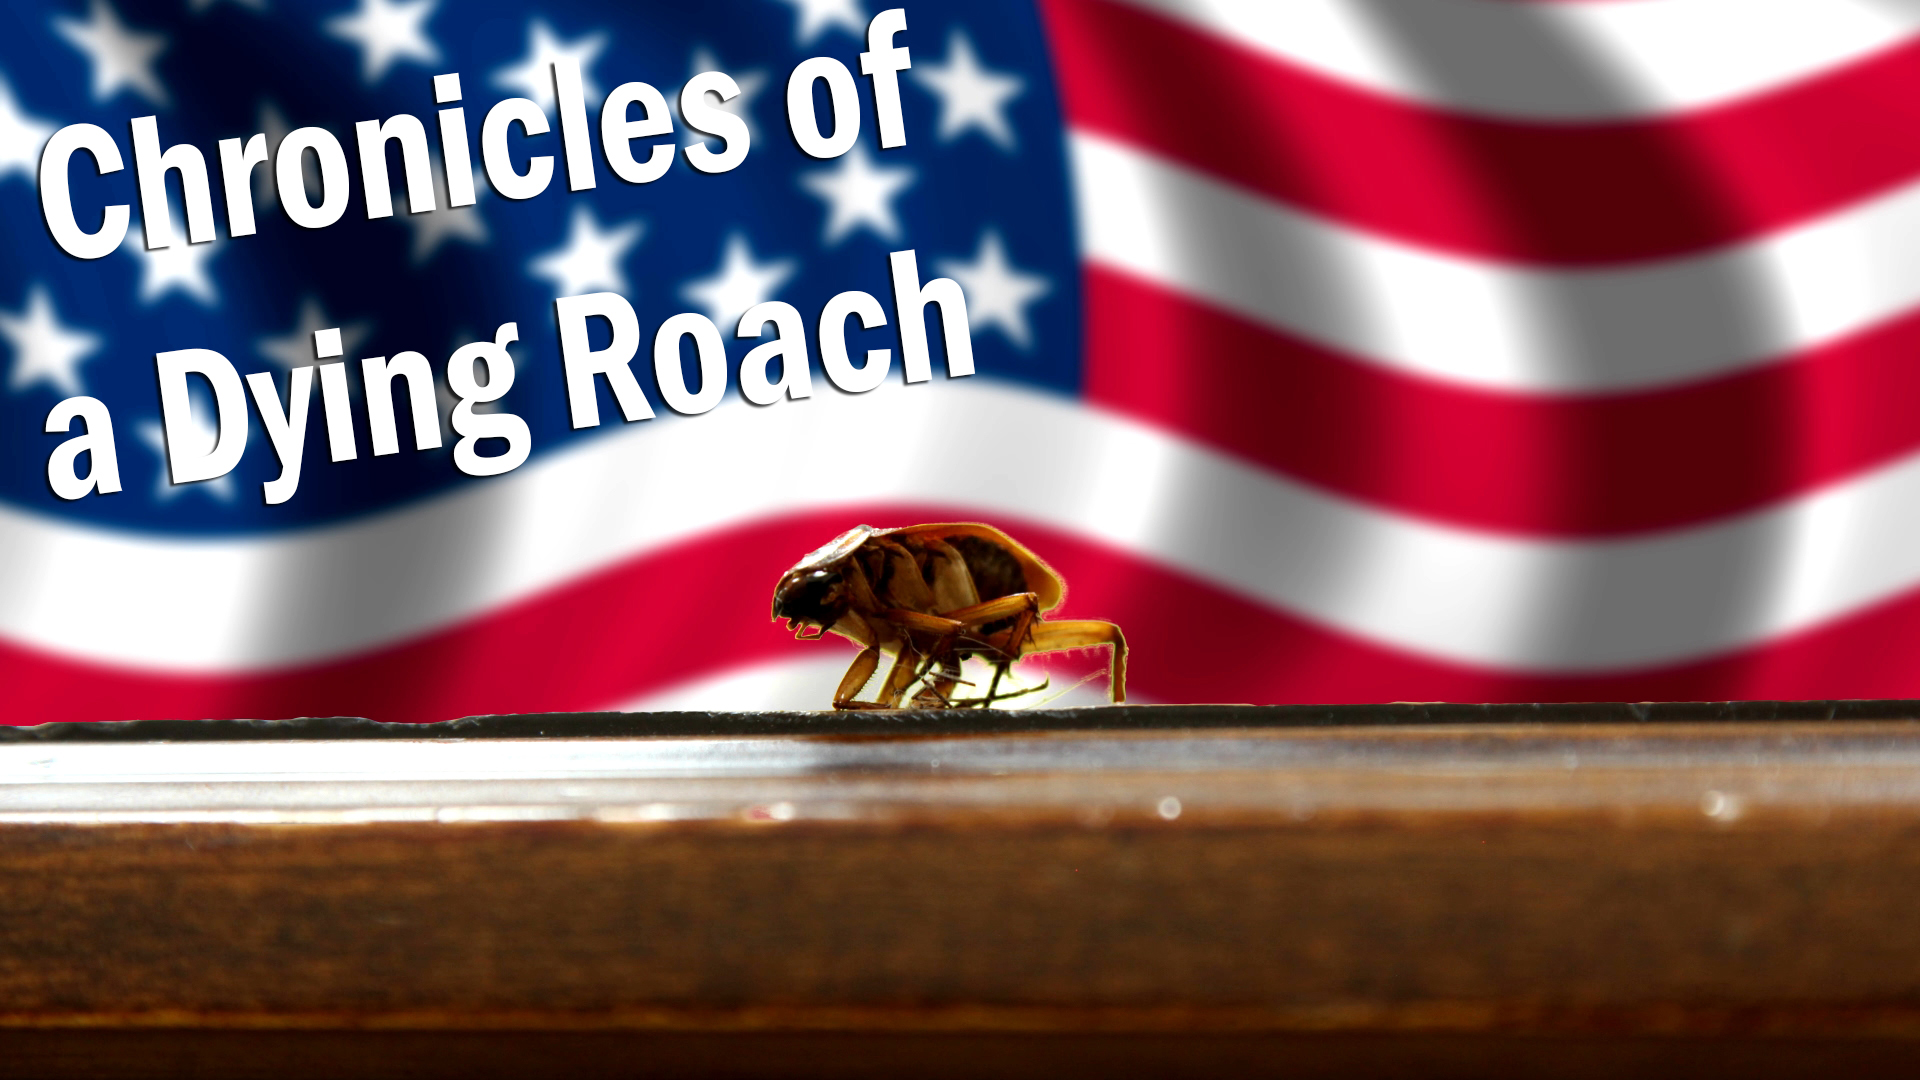 <b>On the brink of death, a roach recounts his life's greatest tragedies and triumphs...</b>